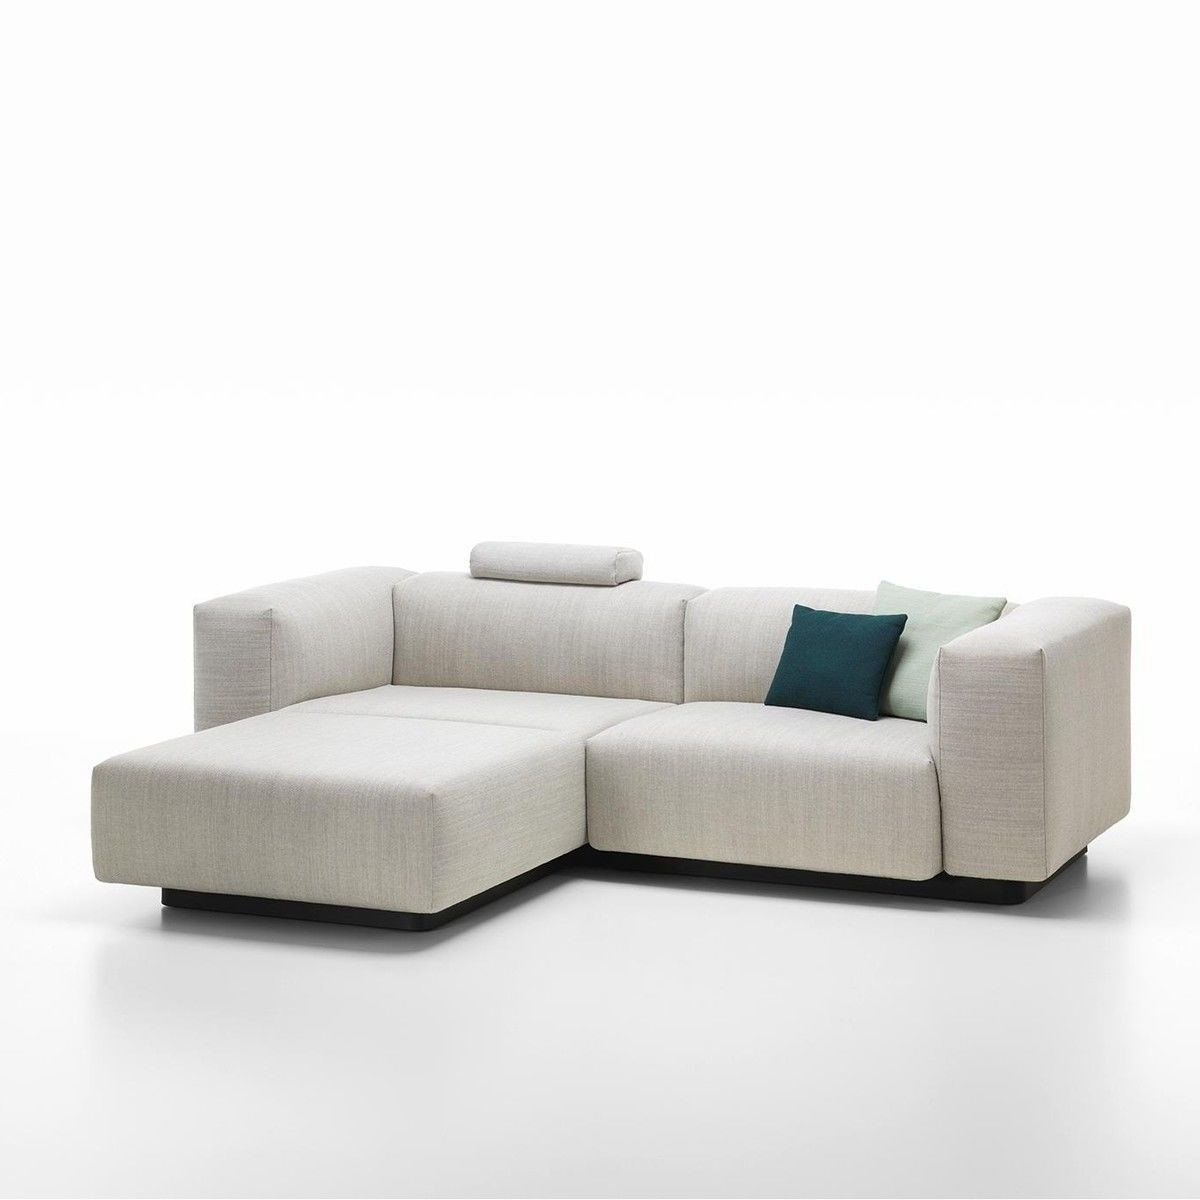 soft modular 2 seater sofa vitra. Black Bedroom Furniture Sets. Home Design Ideas